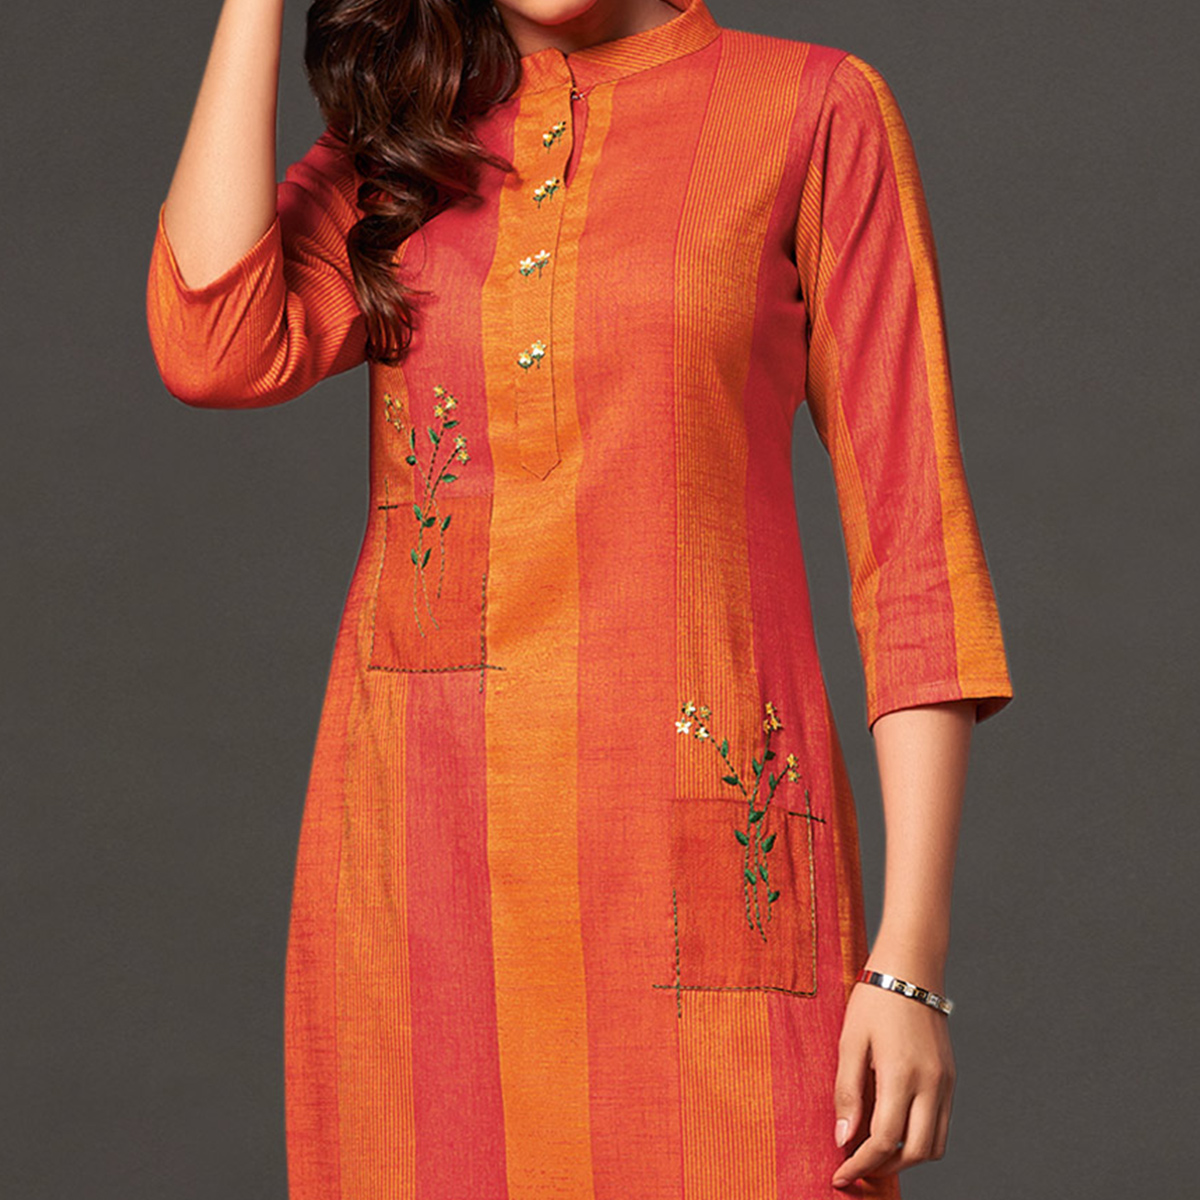 Mesmerising Orange Colored Casual Wear Cotton Kurti With Bottom